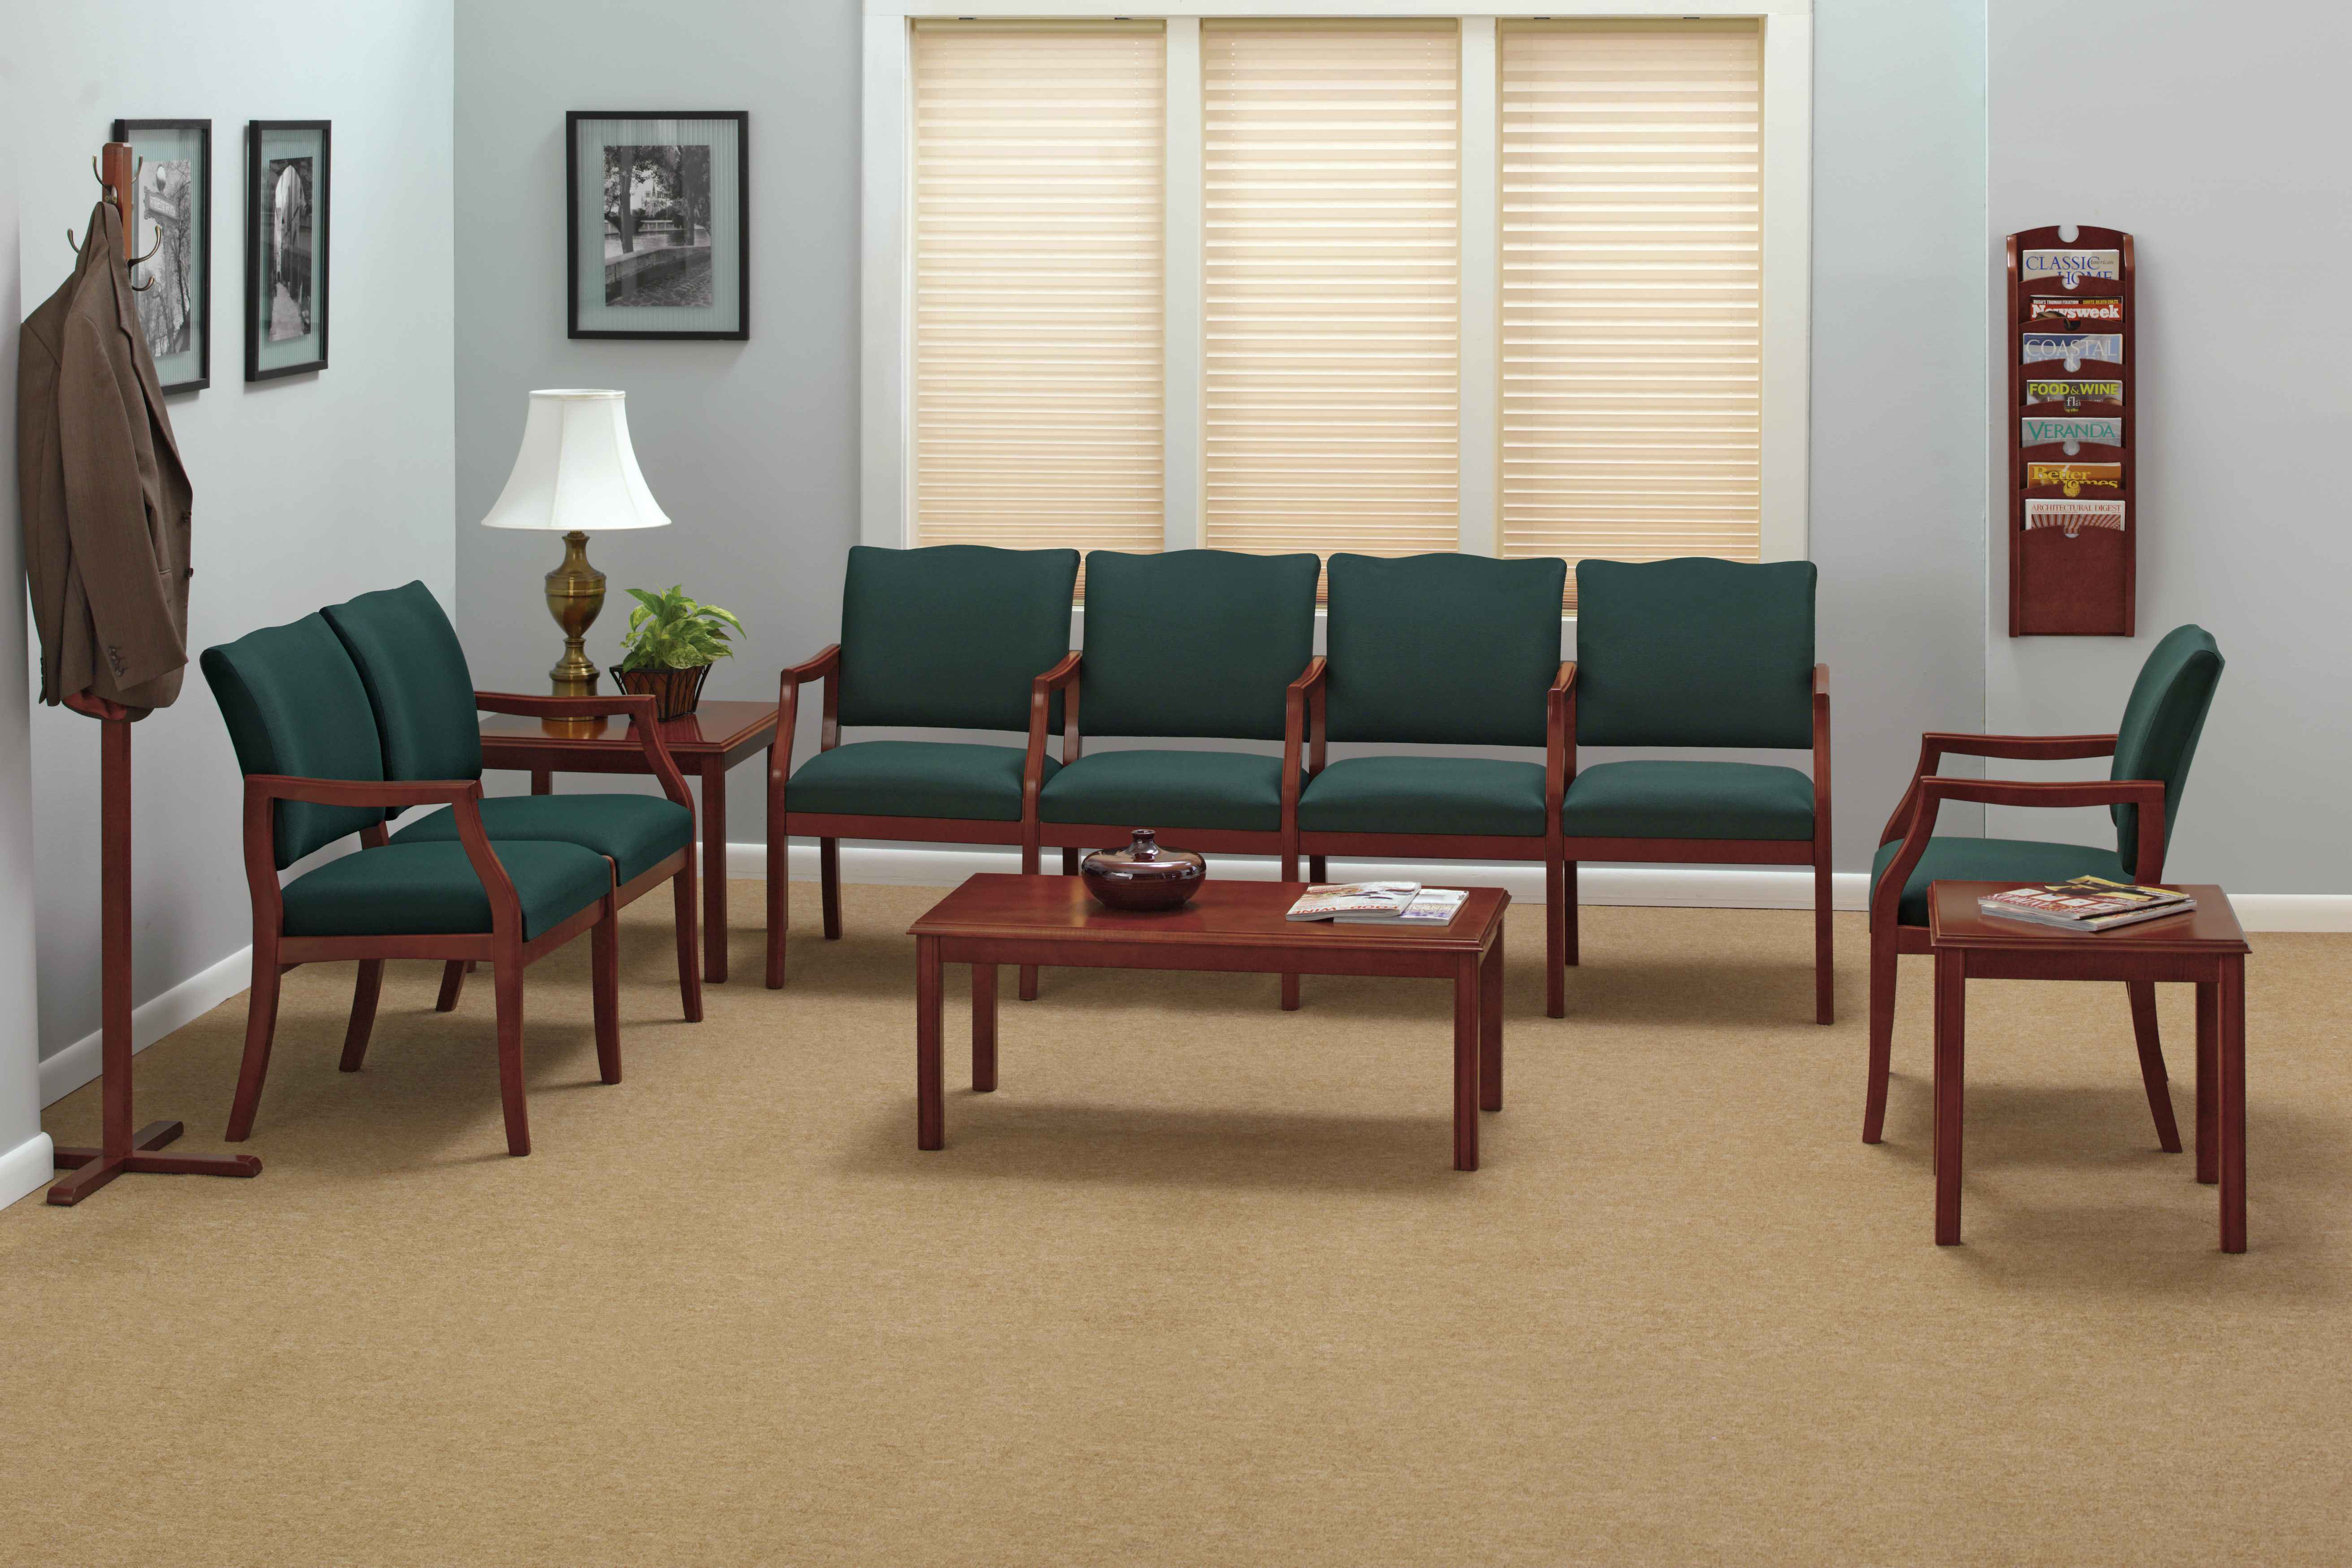 Waiting Room Furniture Sets